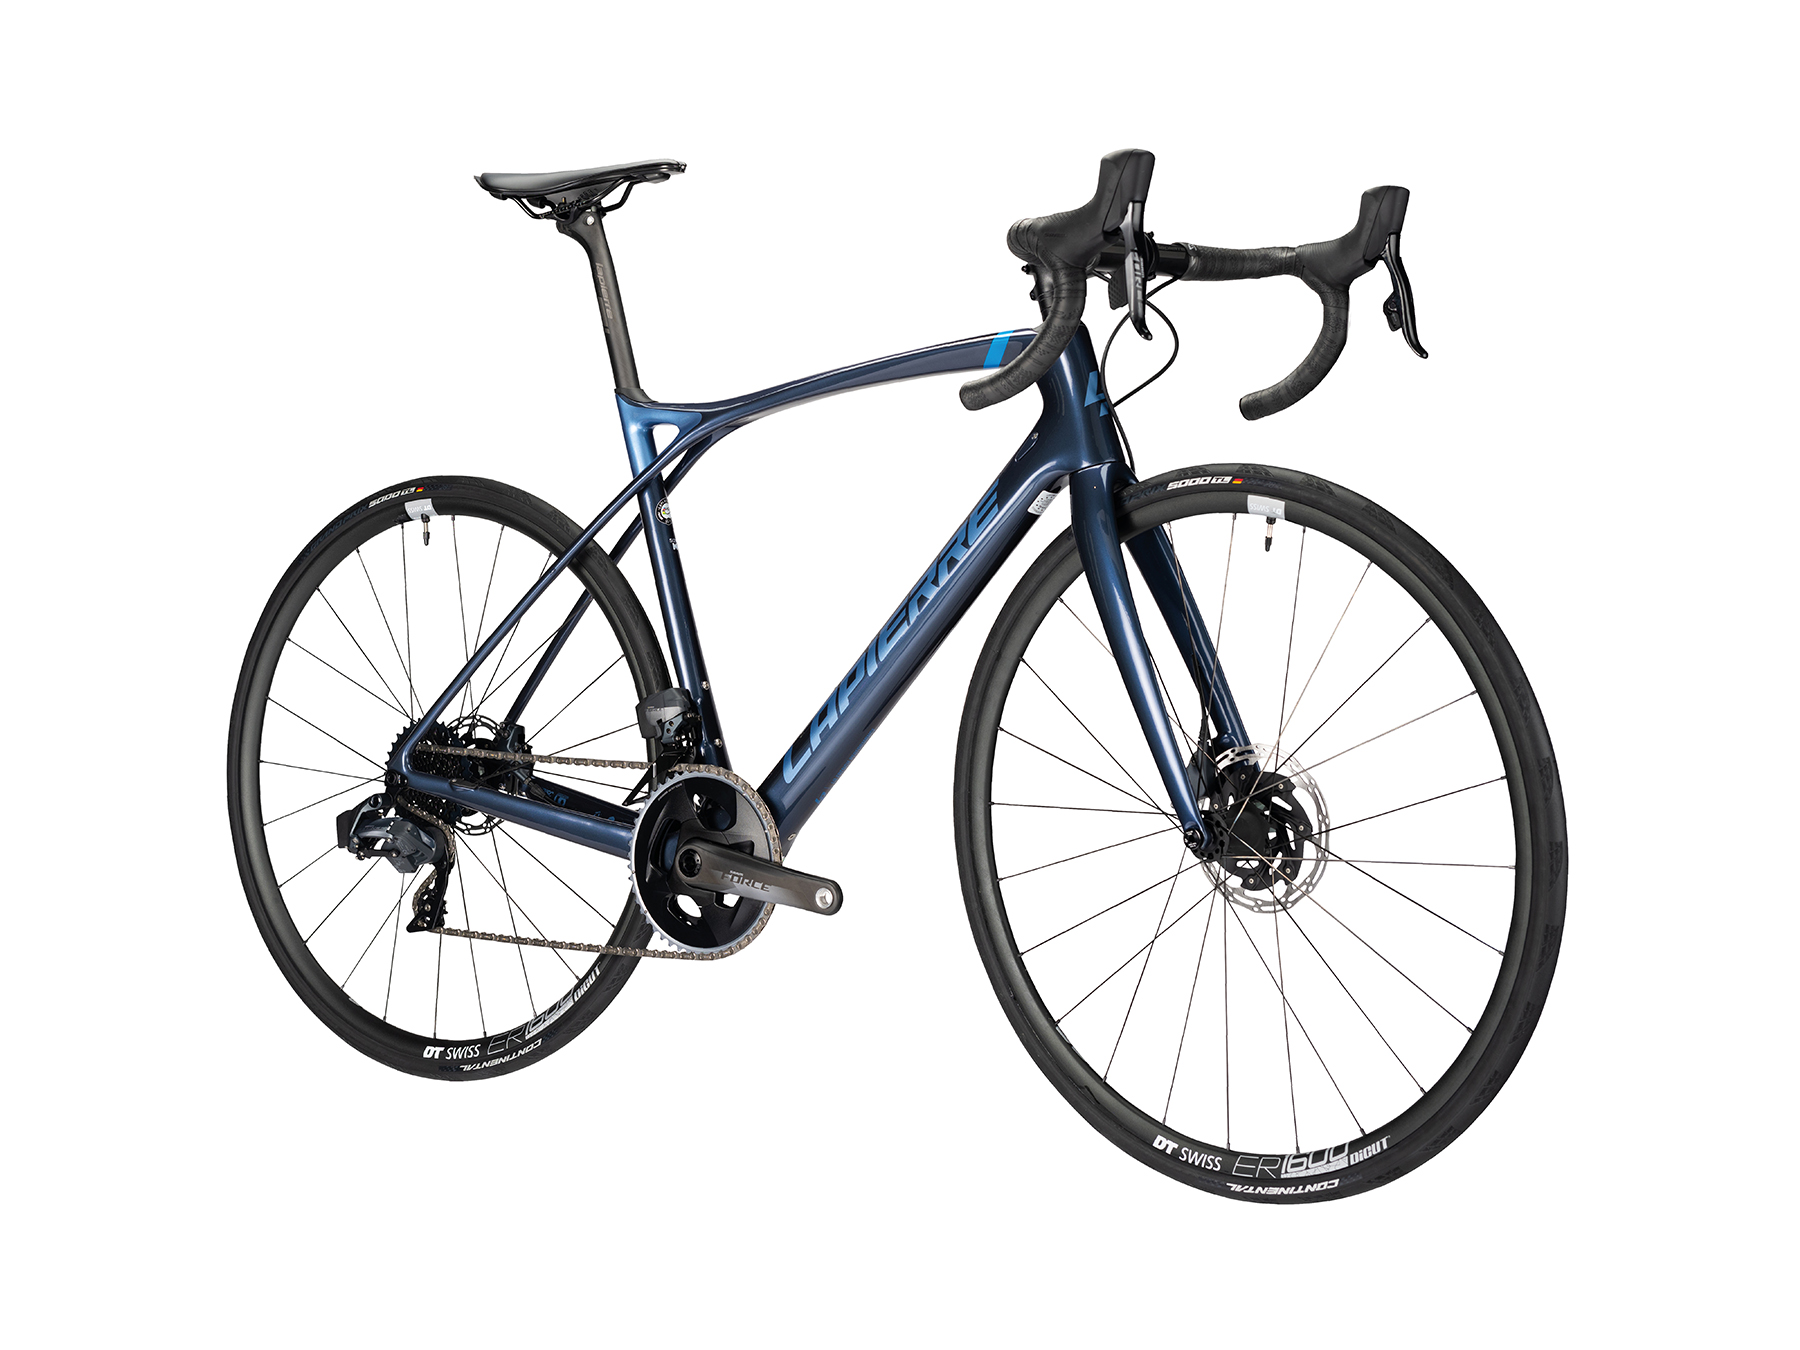 XELIUS SL 700 FORCE AXS DISC ULTIMATE